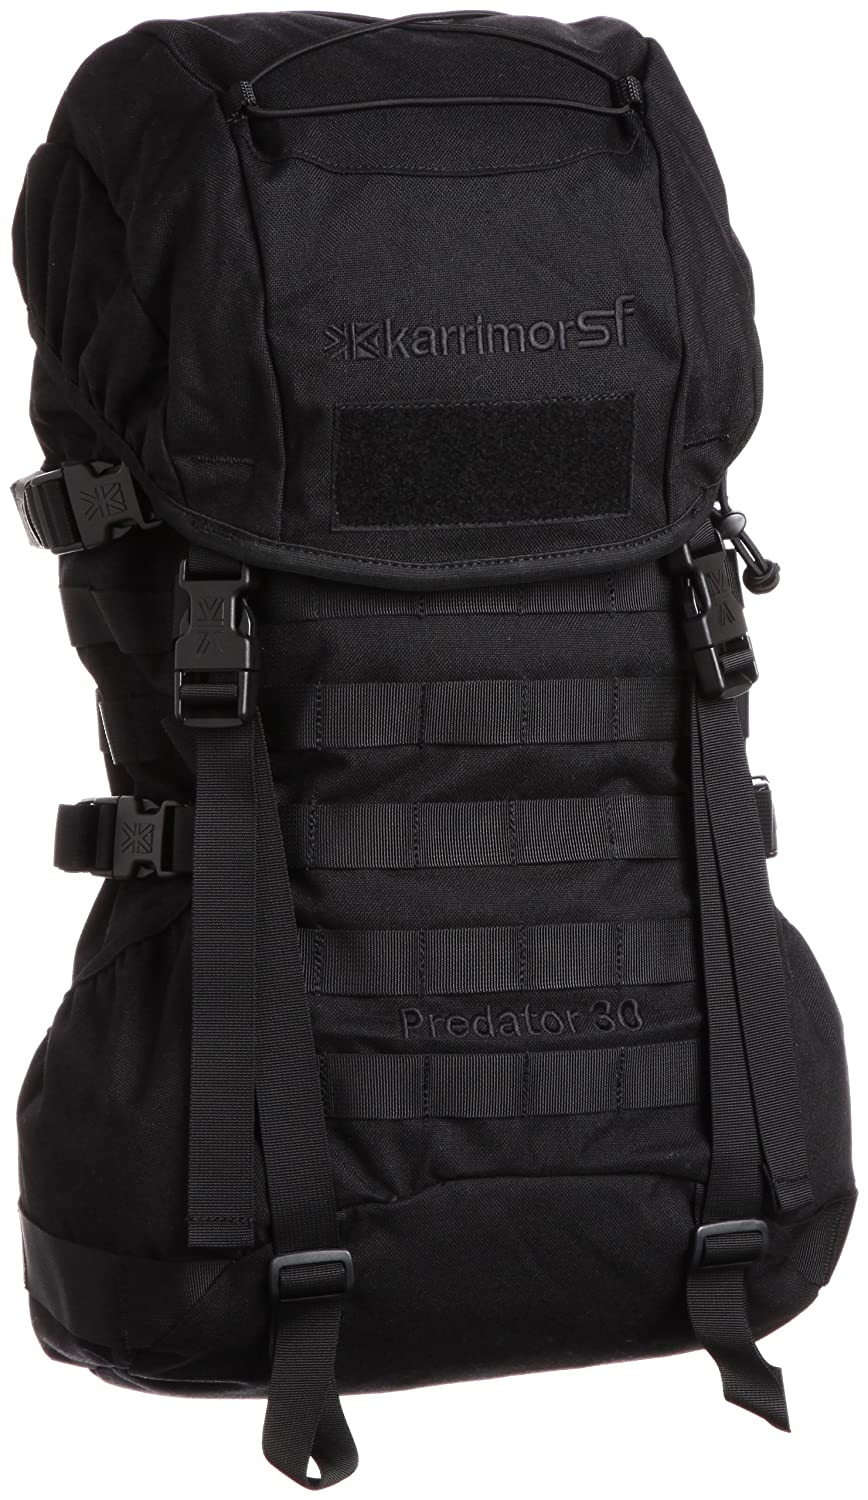 Karrimor SF Protator 30 Backpack